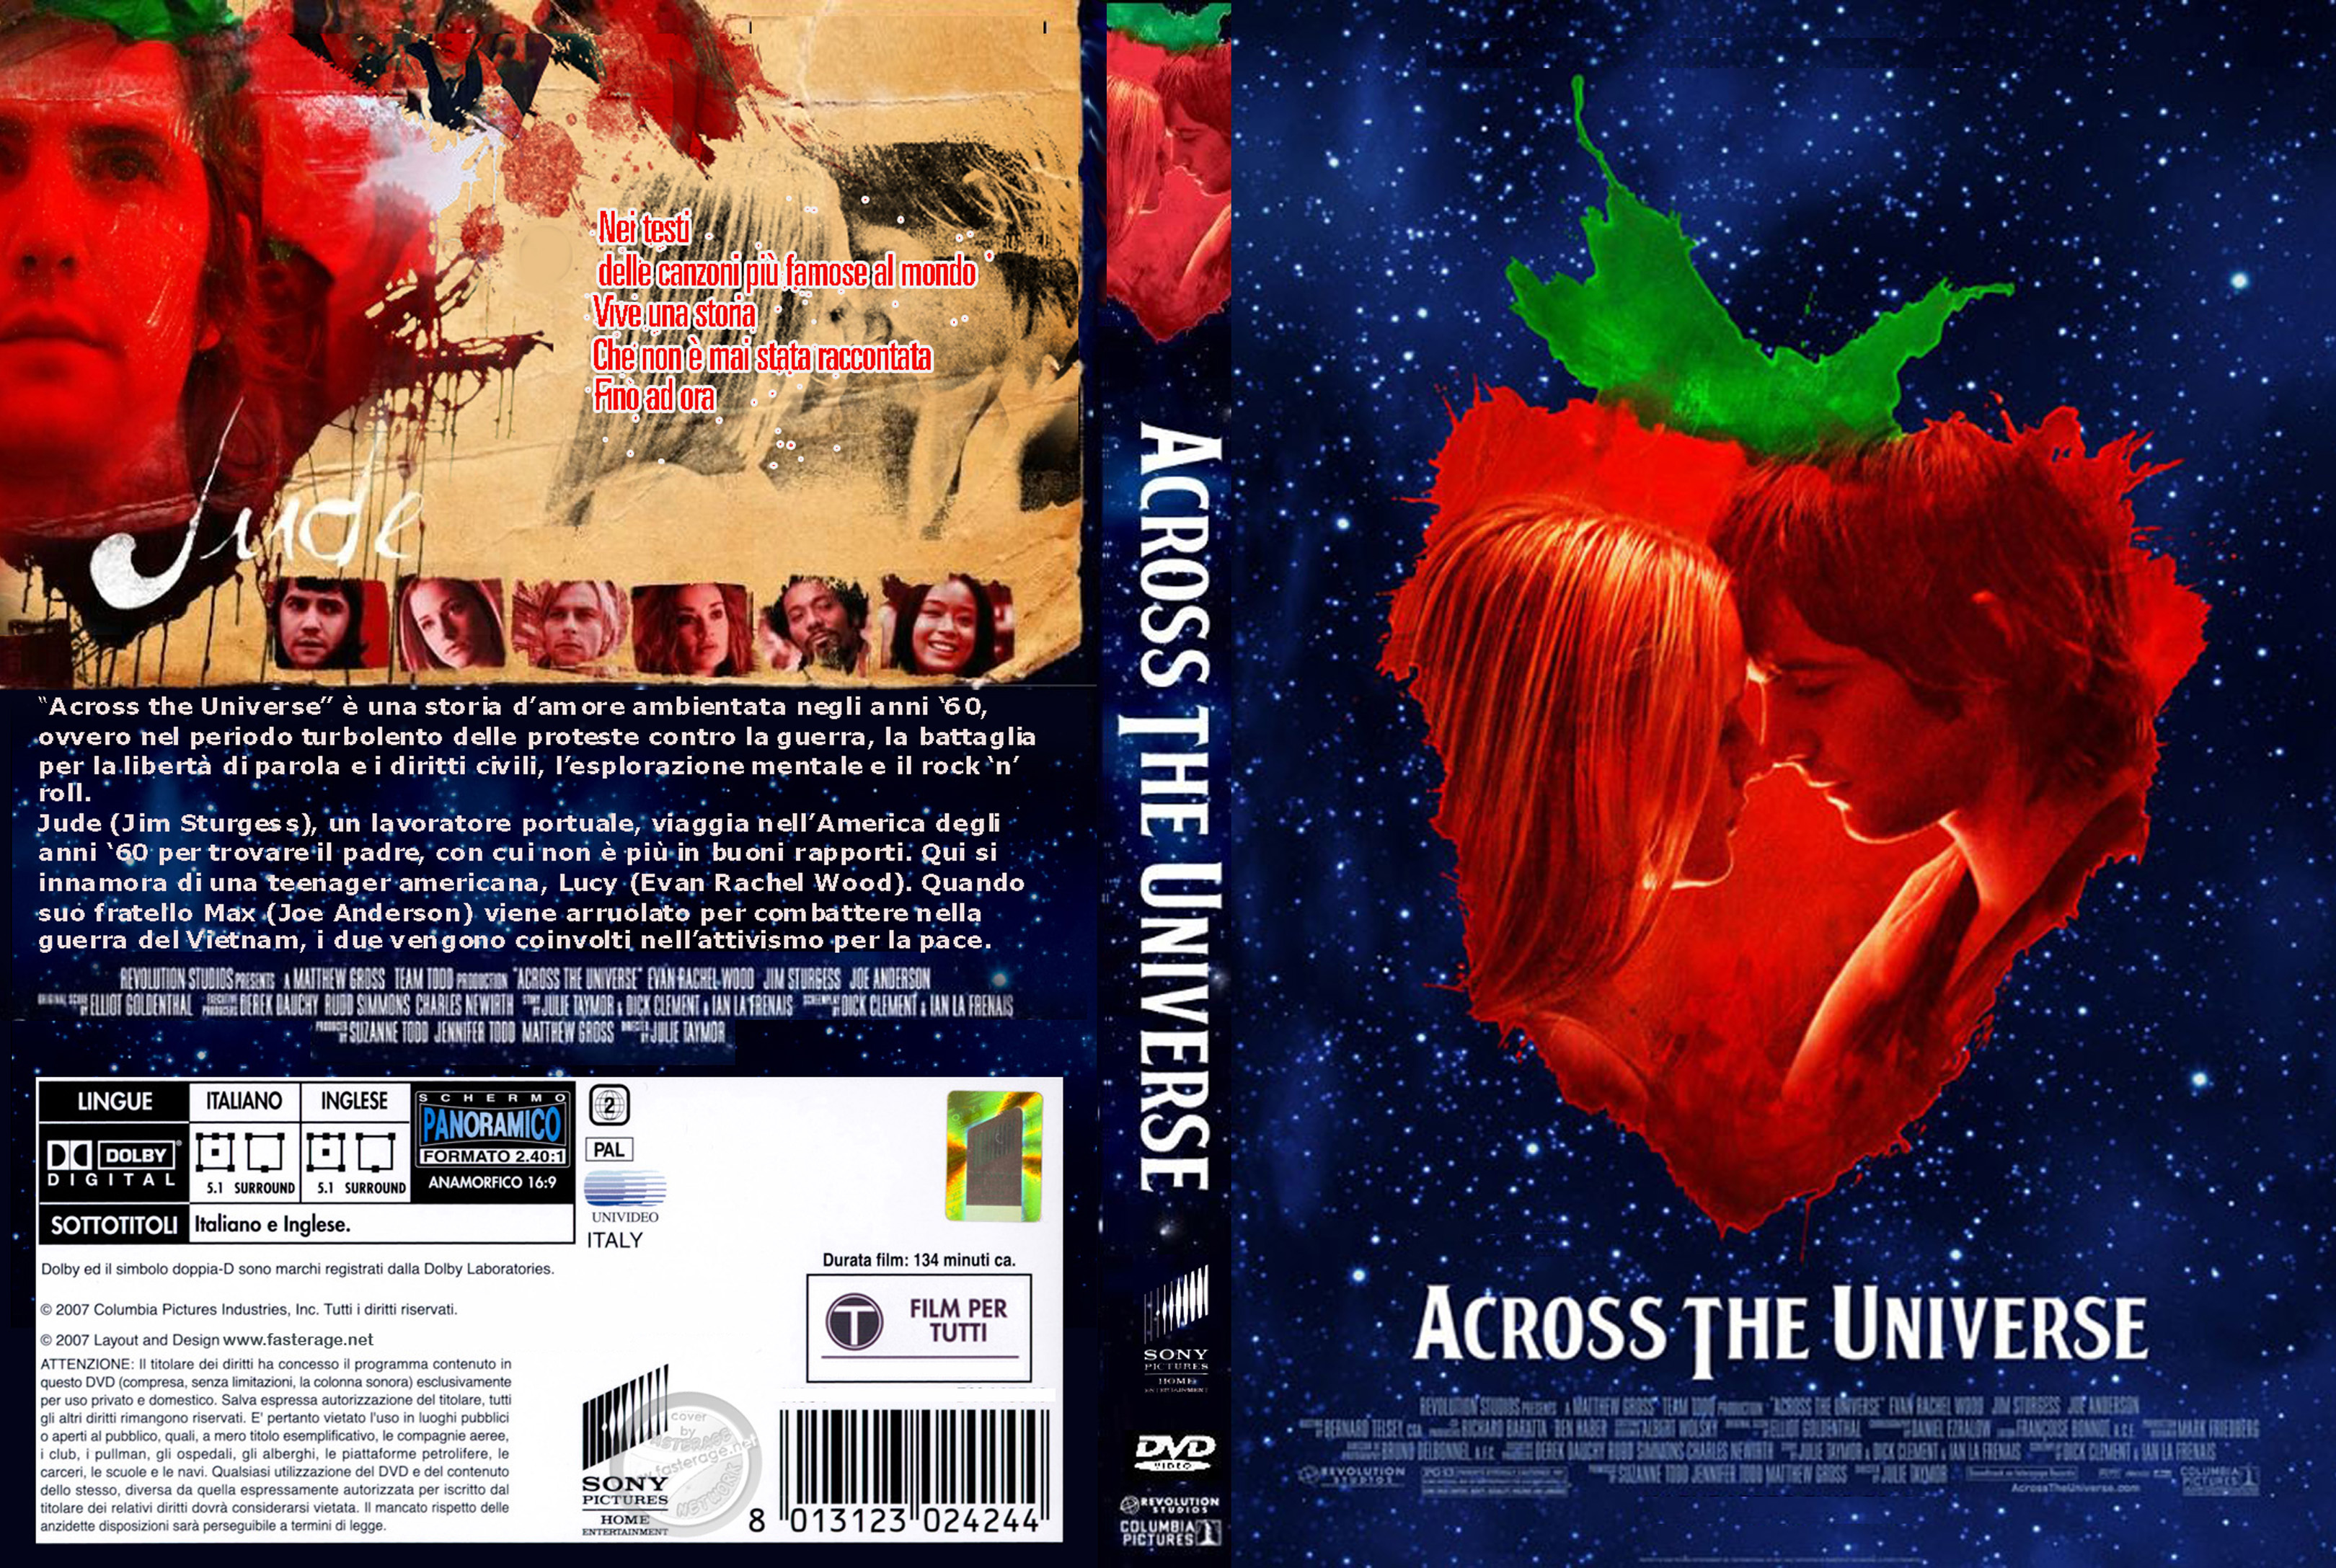 across the universe 1 Across the universe has 104694 ratings and 9949 reviews ava oceana said: 35 when i found across the universe at the library, i spent several minutes.